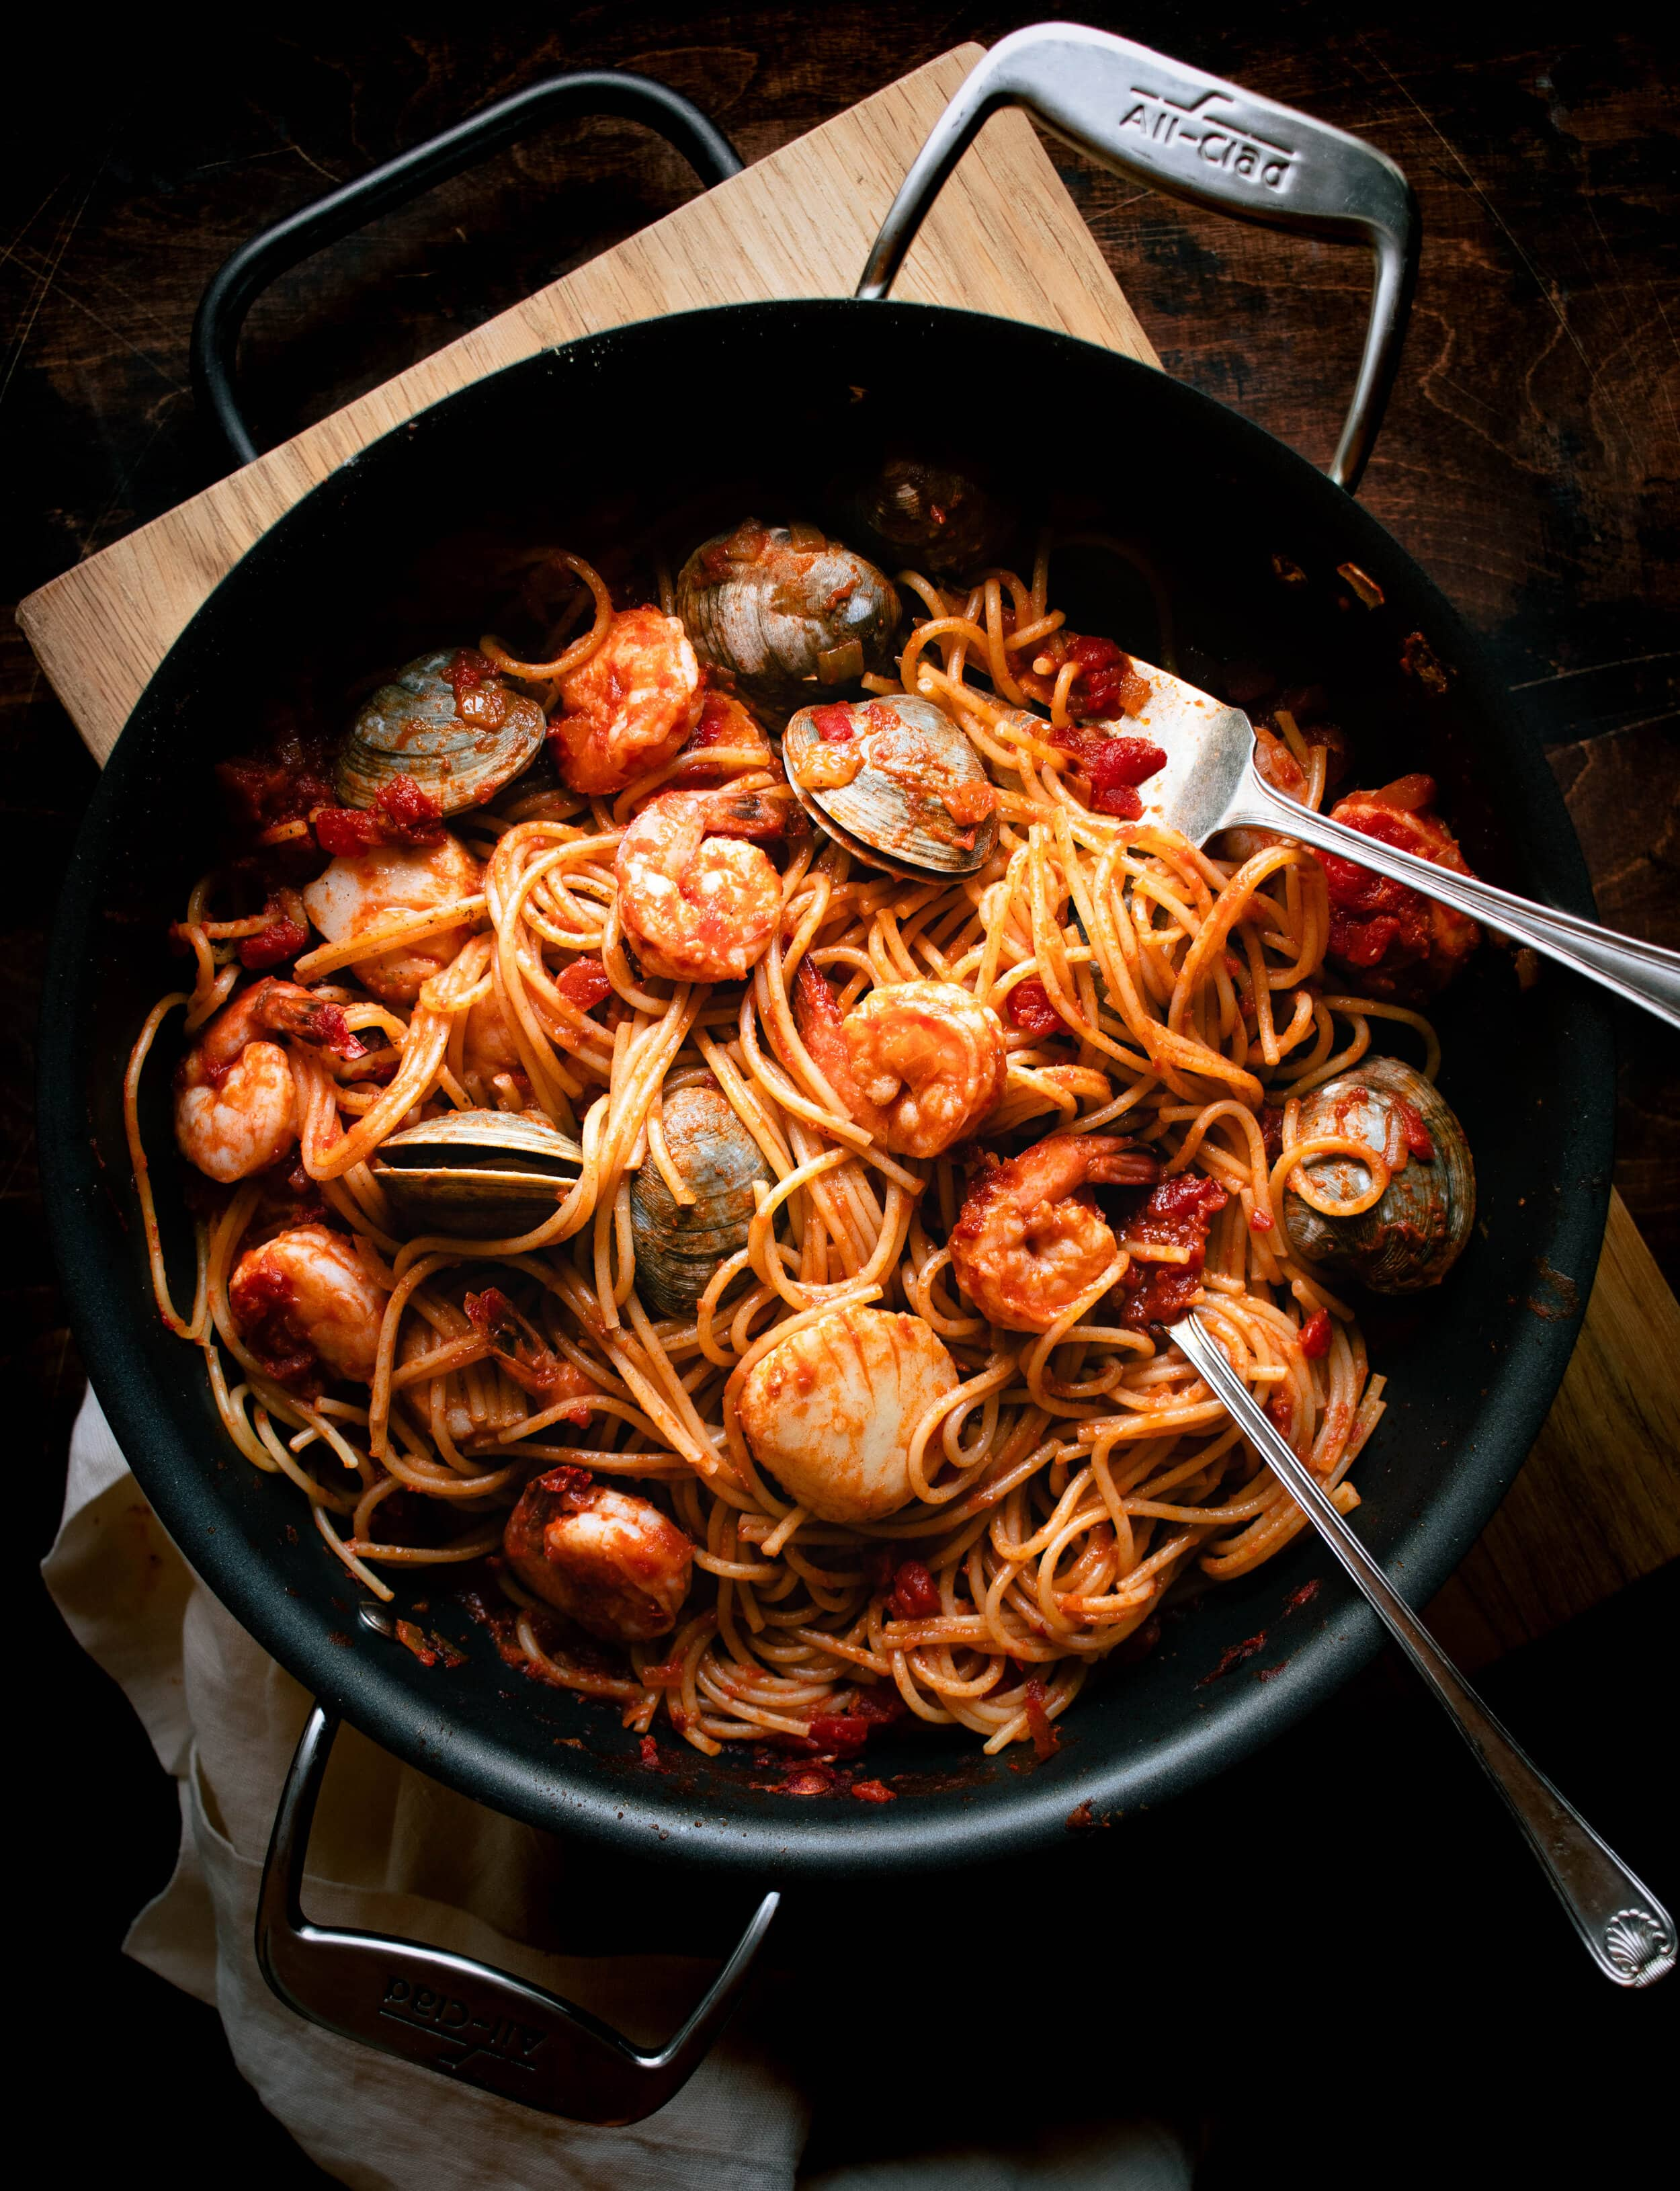 seafood pasta picture-1.jpg